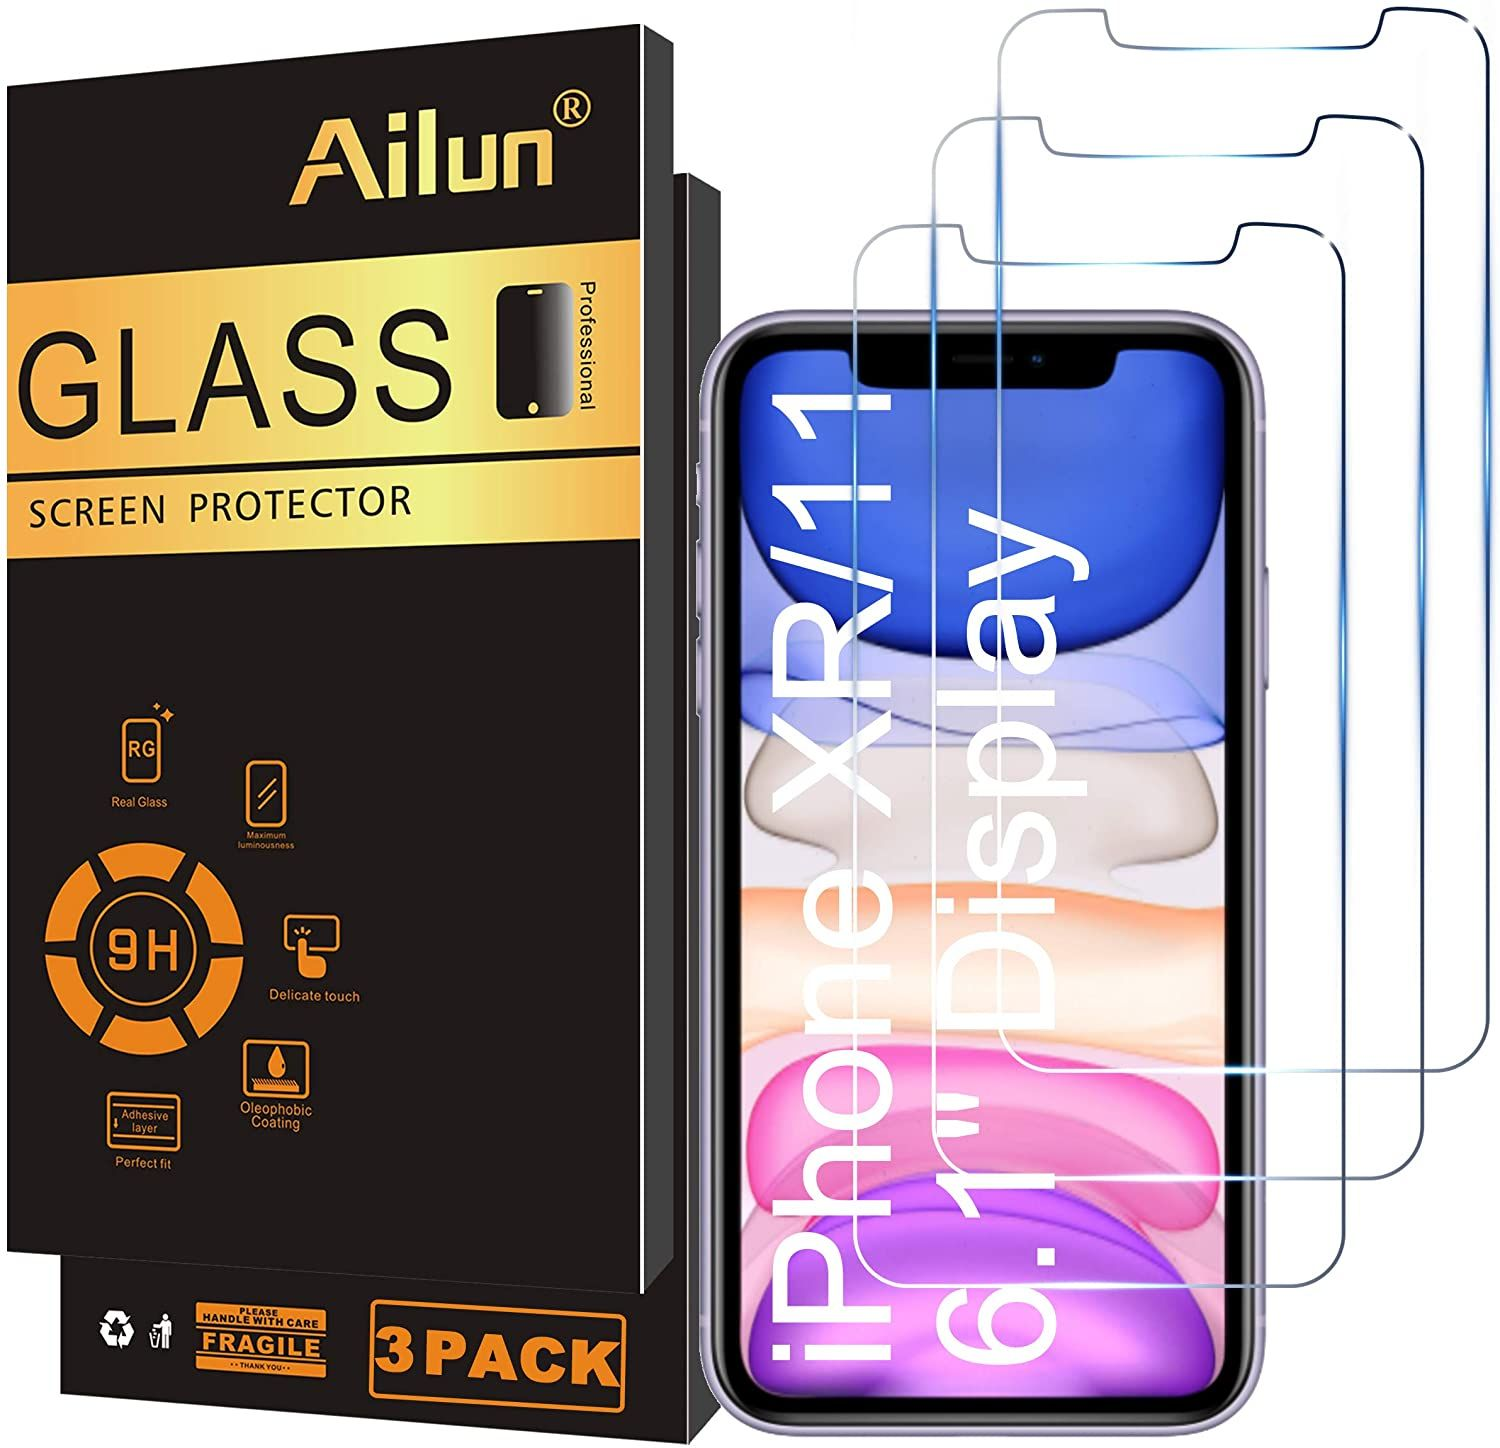 Ailun glass screen protector for iphone 11iphone xr 61